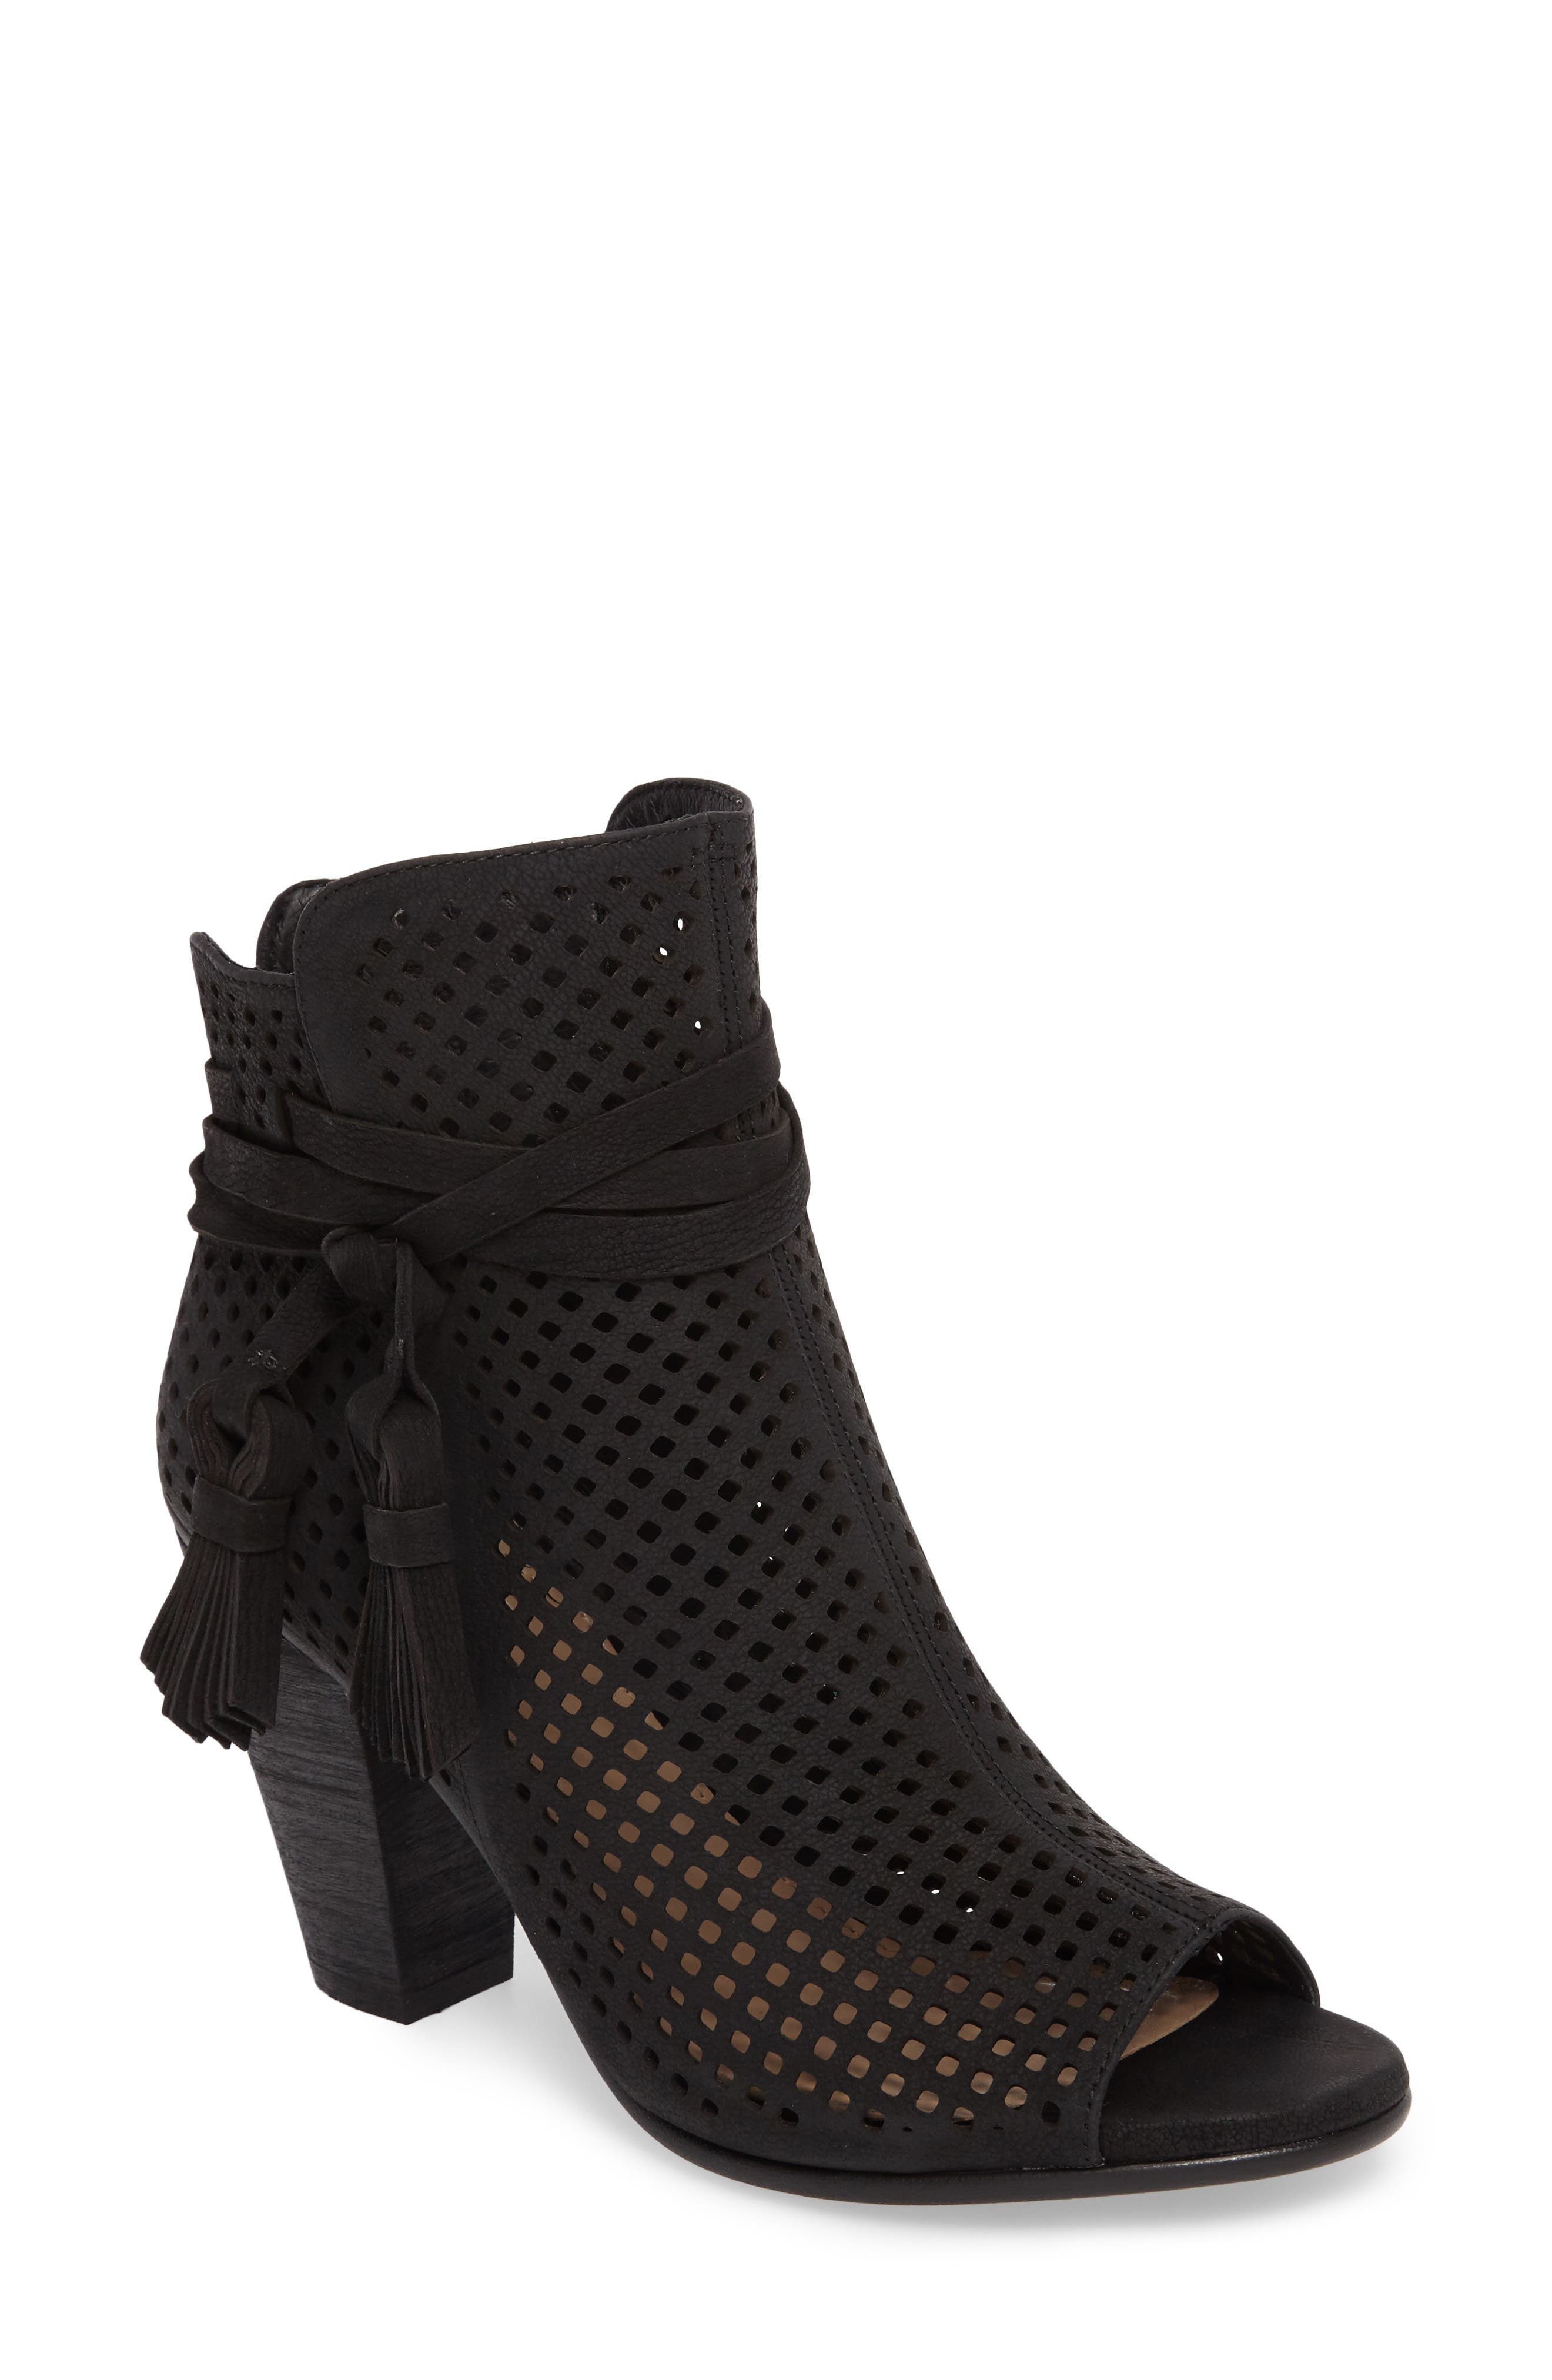 Kamey Perforated Open Toe Bootie,                             Main thumbnail 1, color,                             001